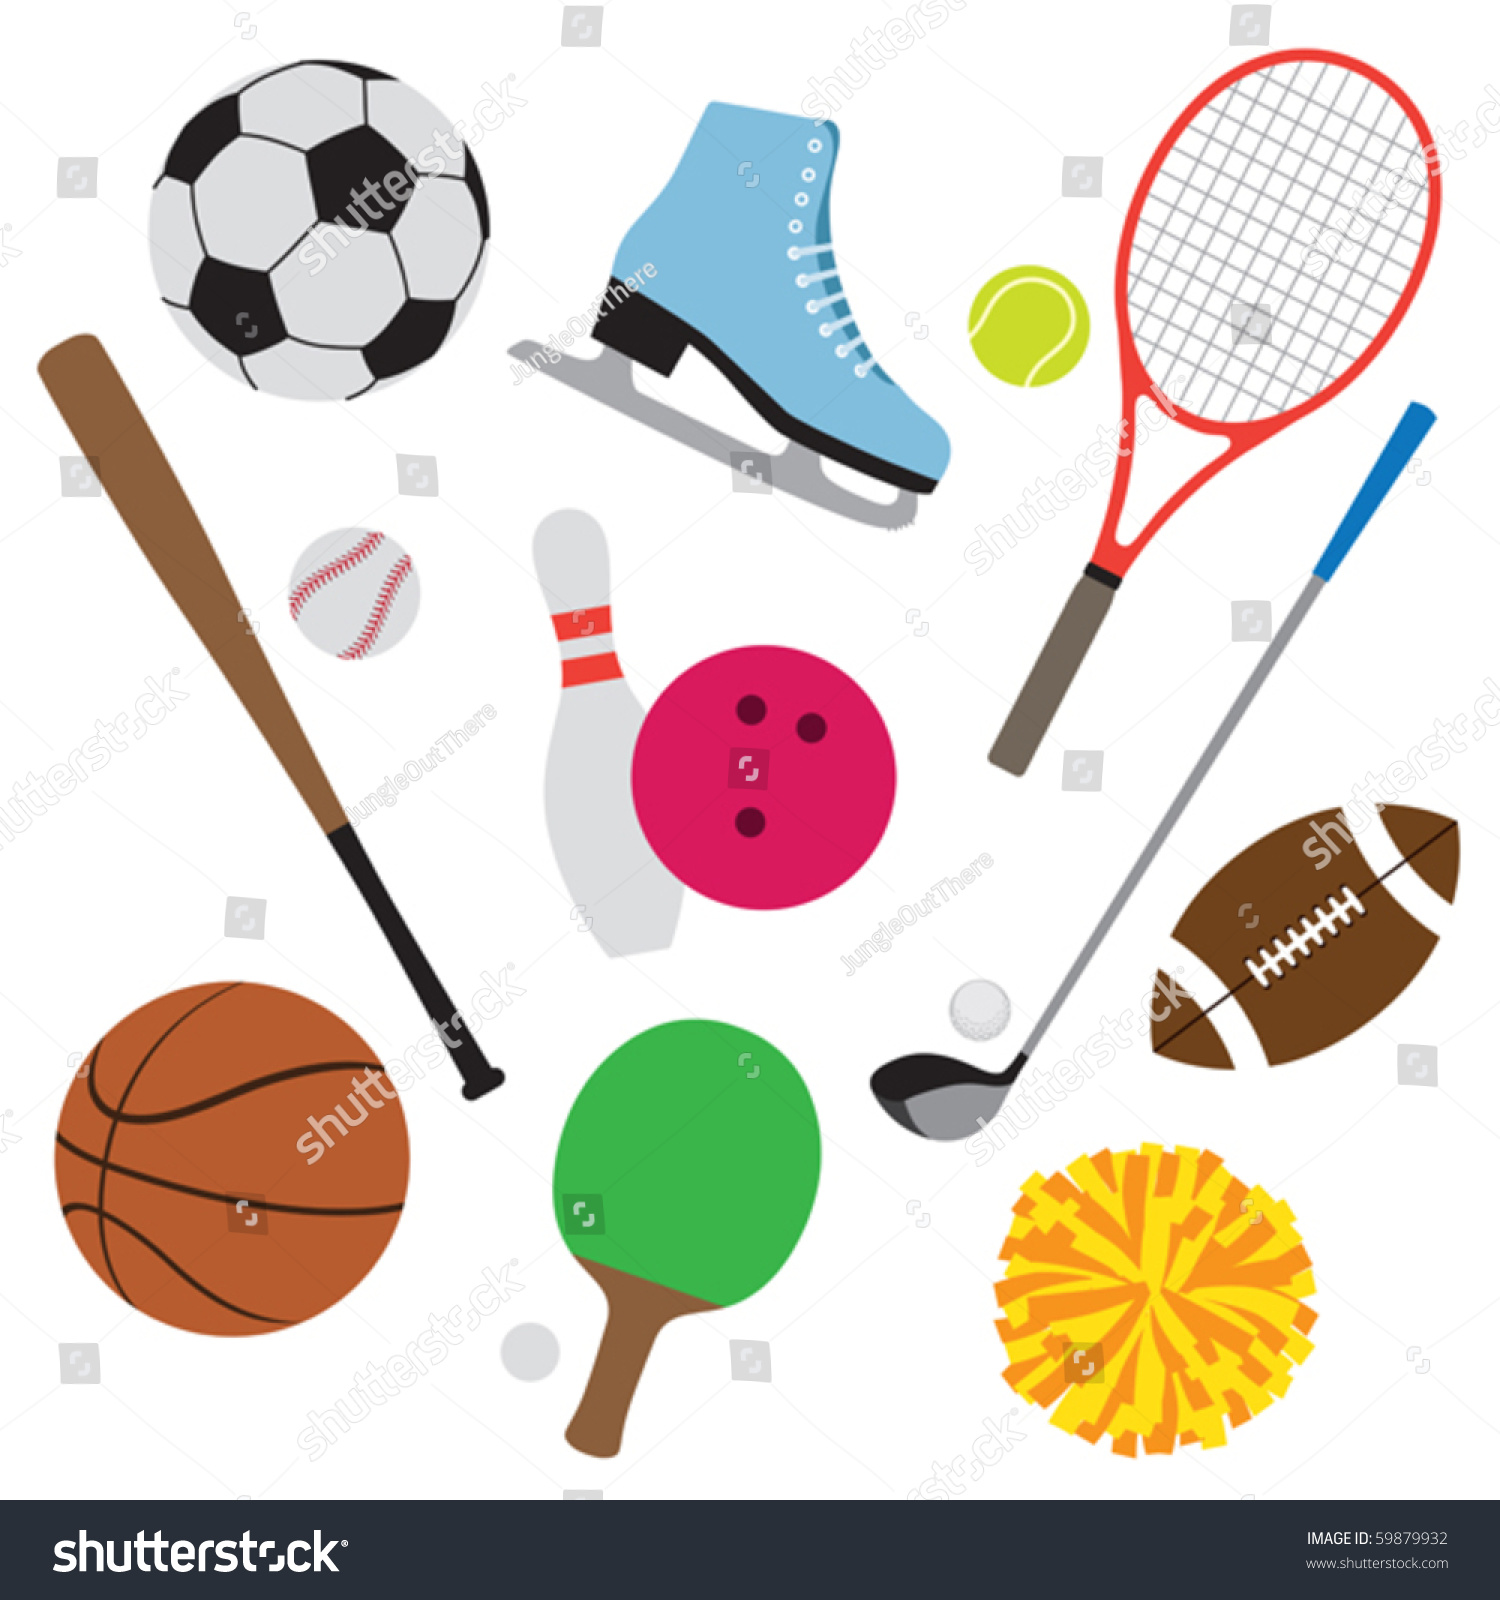 Sports equipment. Sporting clipart free download